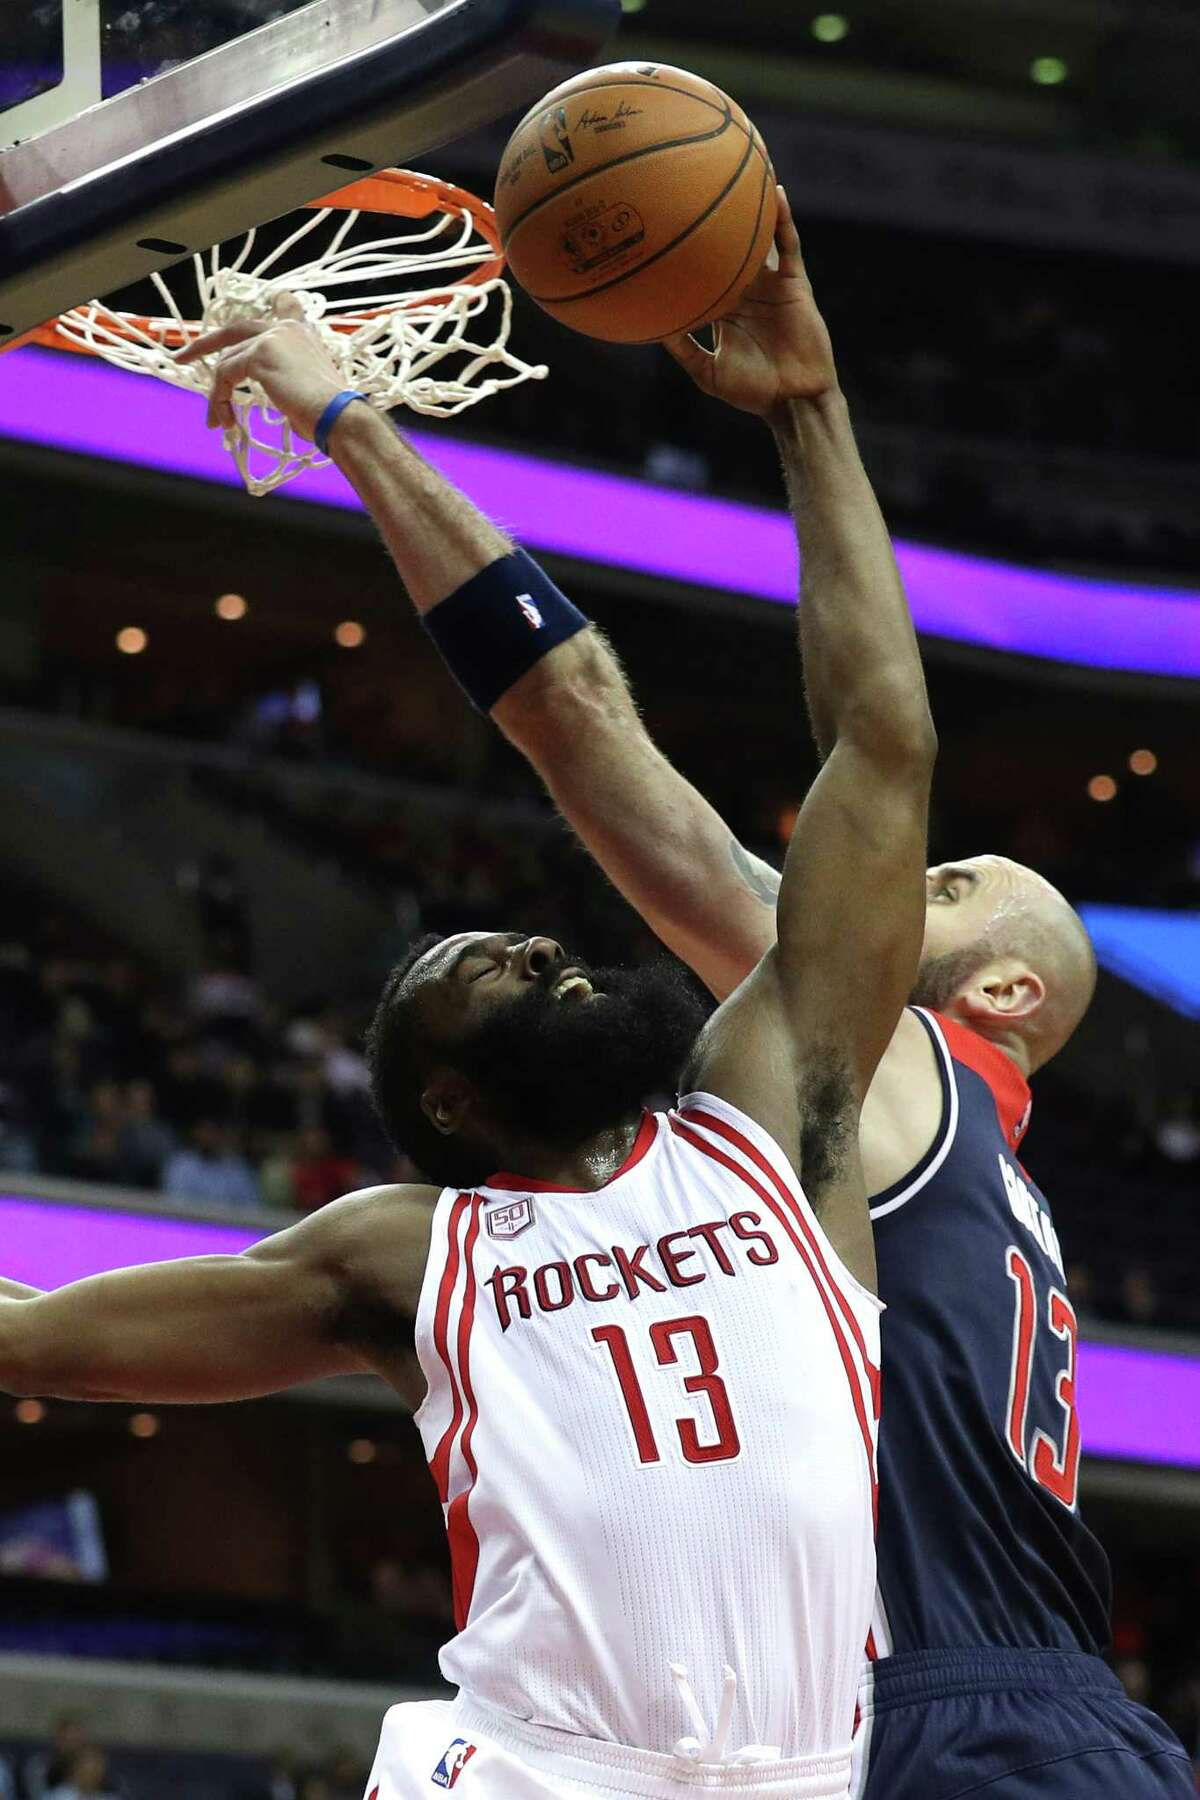 WASHINGTON, DC - NOVEMBER 07: James Harden #13 of the Houston Rockets has a shot blocked by Marcin Gortat #13 of the Washington Wizards during the first half at Verizon Center on November 7, 2016 in Washington, DC. NOTE TO USER: User expressly acknowledges and agrees that, by downloading and or using this photograph, User is consenting to the terms and conditions of the Getty Images License Agreement.